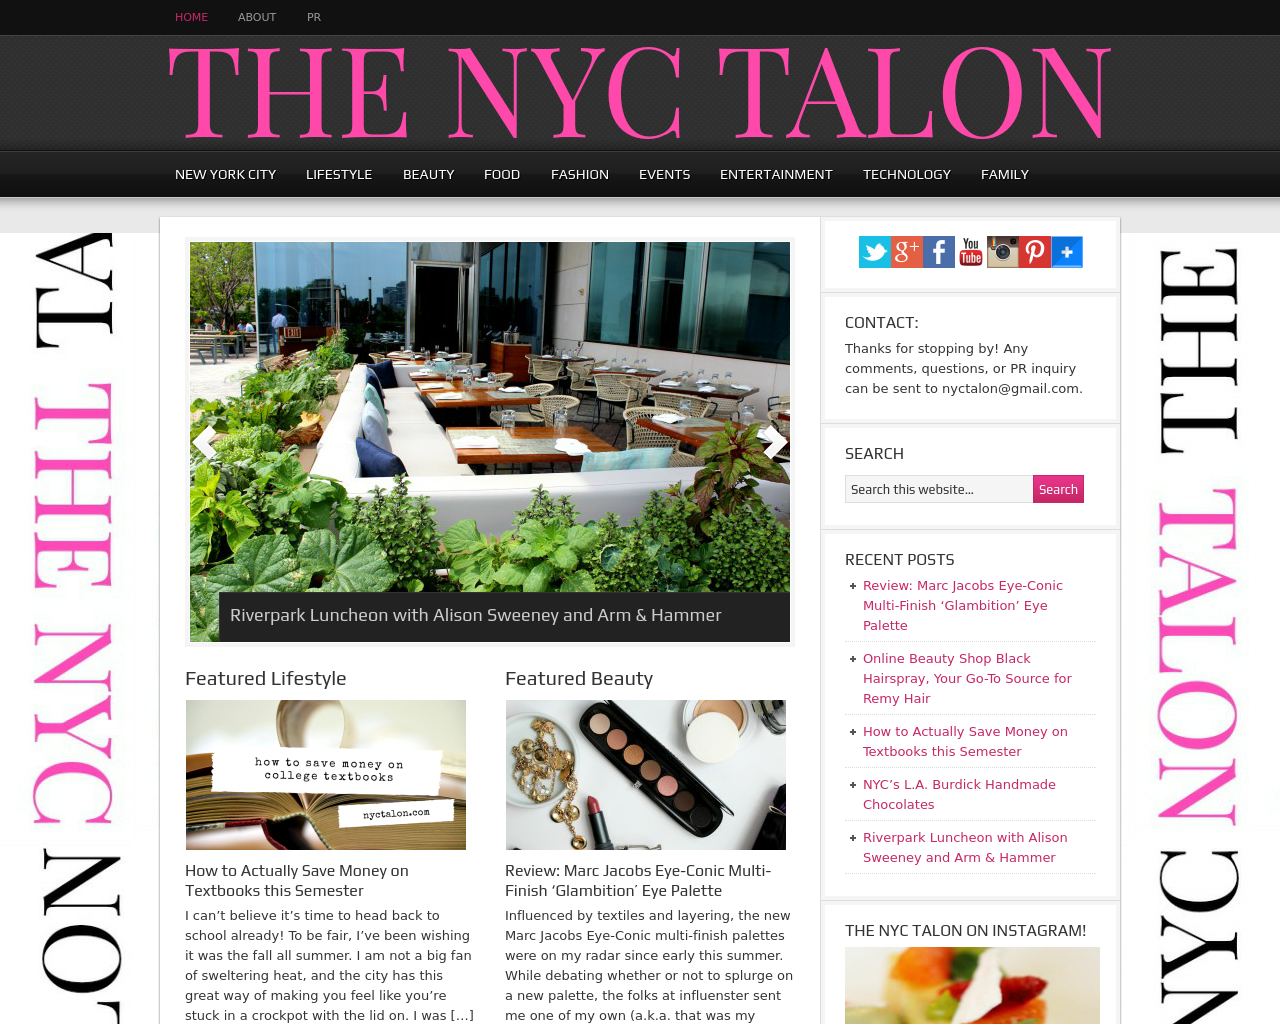 THE-NYC-TALON-Advertising-Reviews-Pricing